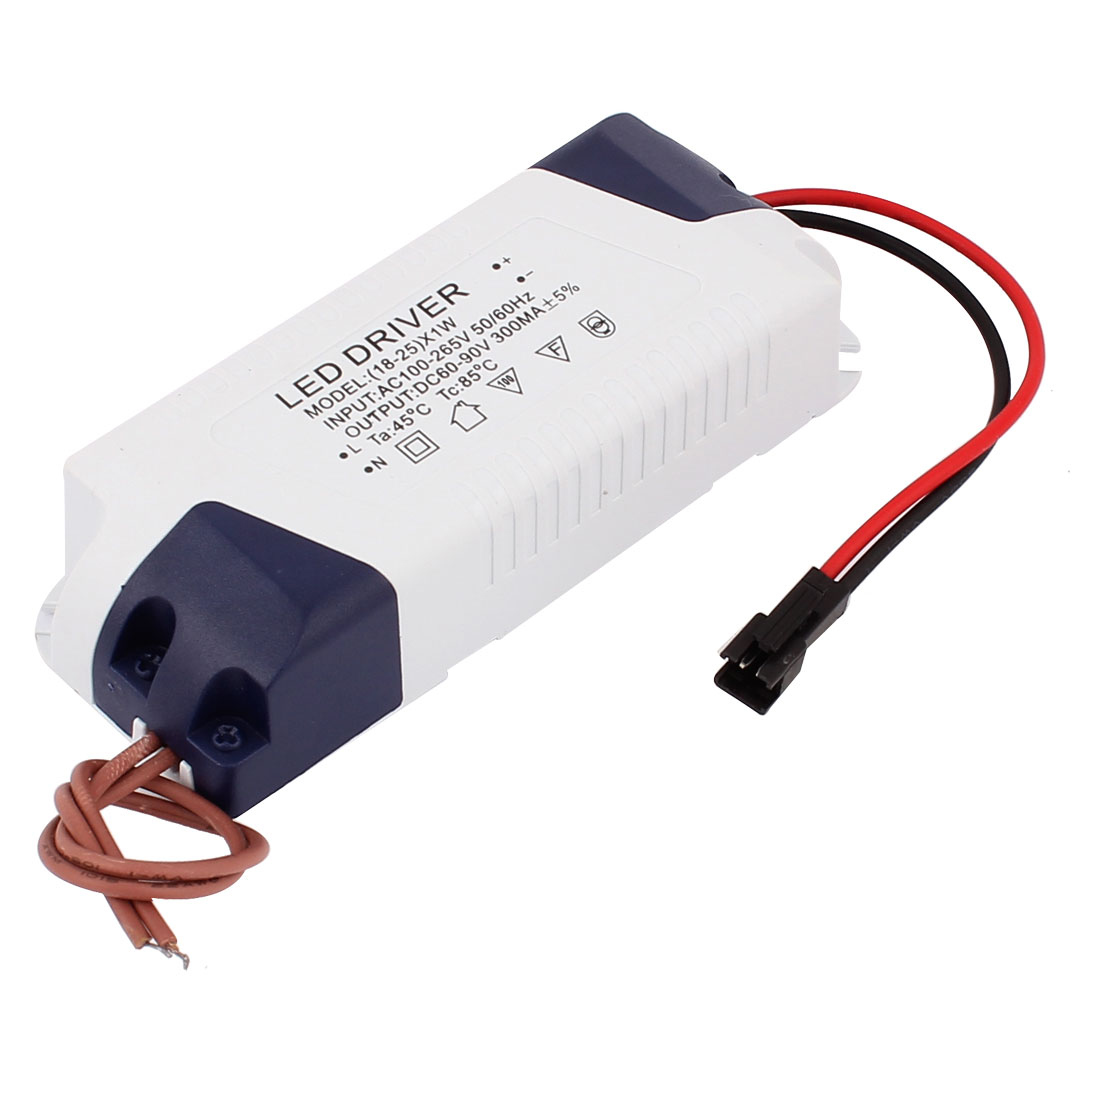 AC100-265V to DC60-90V 18-25W Transformer Ceiling Lamp LED Driver Power Supply